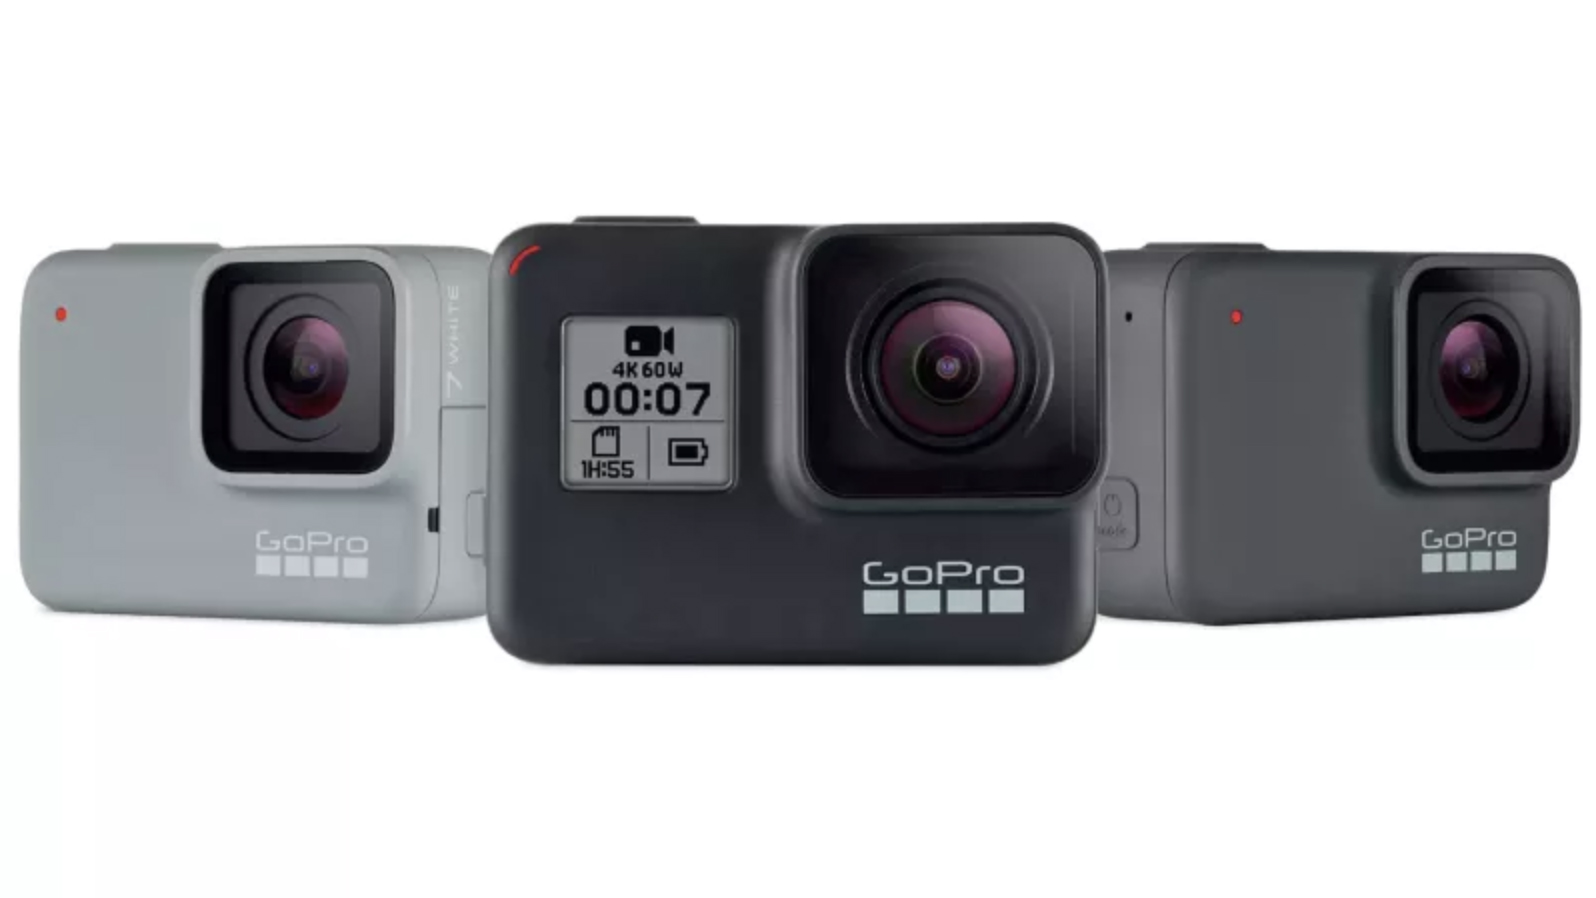 You can now trade in any old camera for £100 off a new GoPro | Digital Camera World